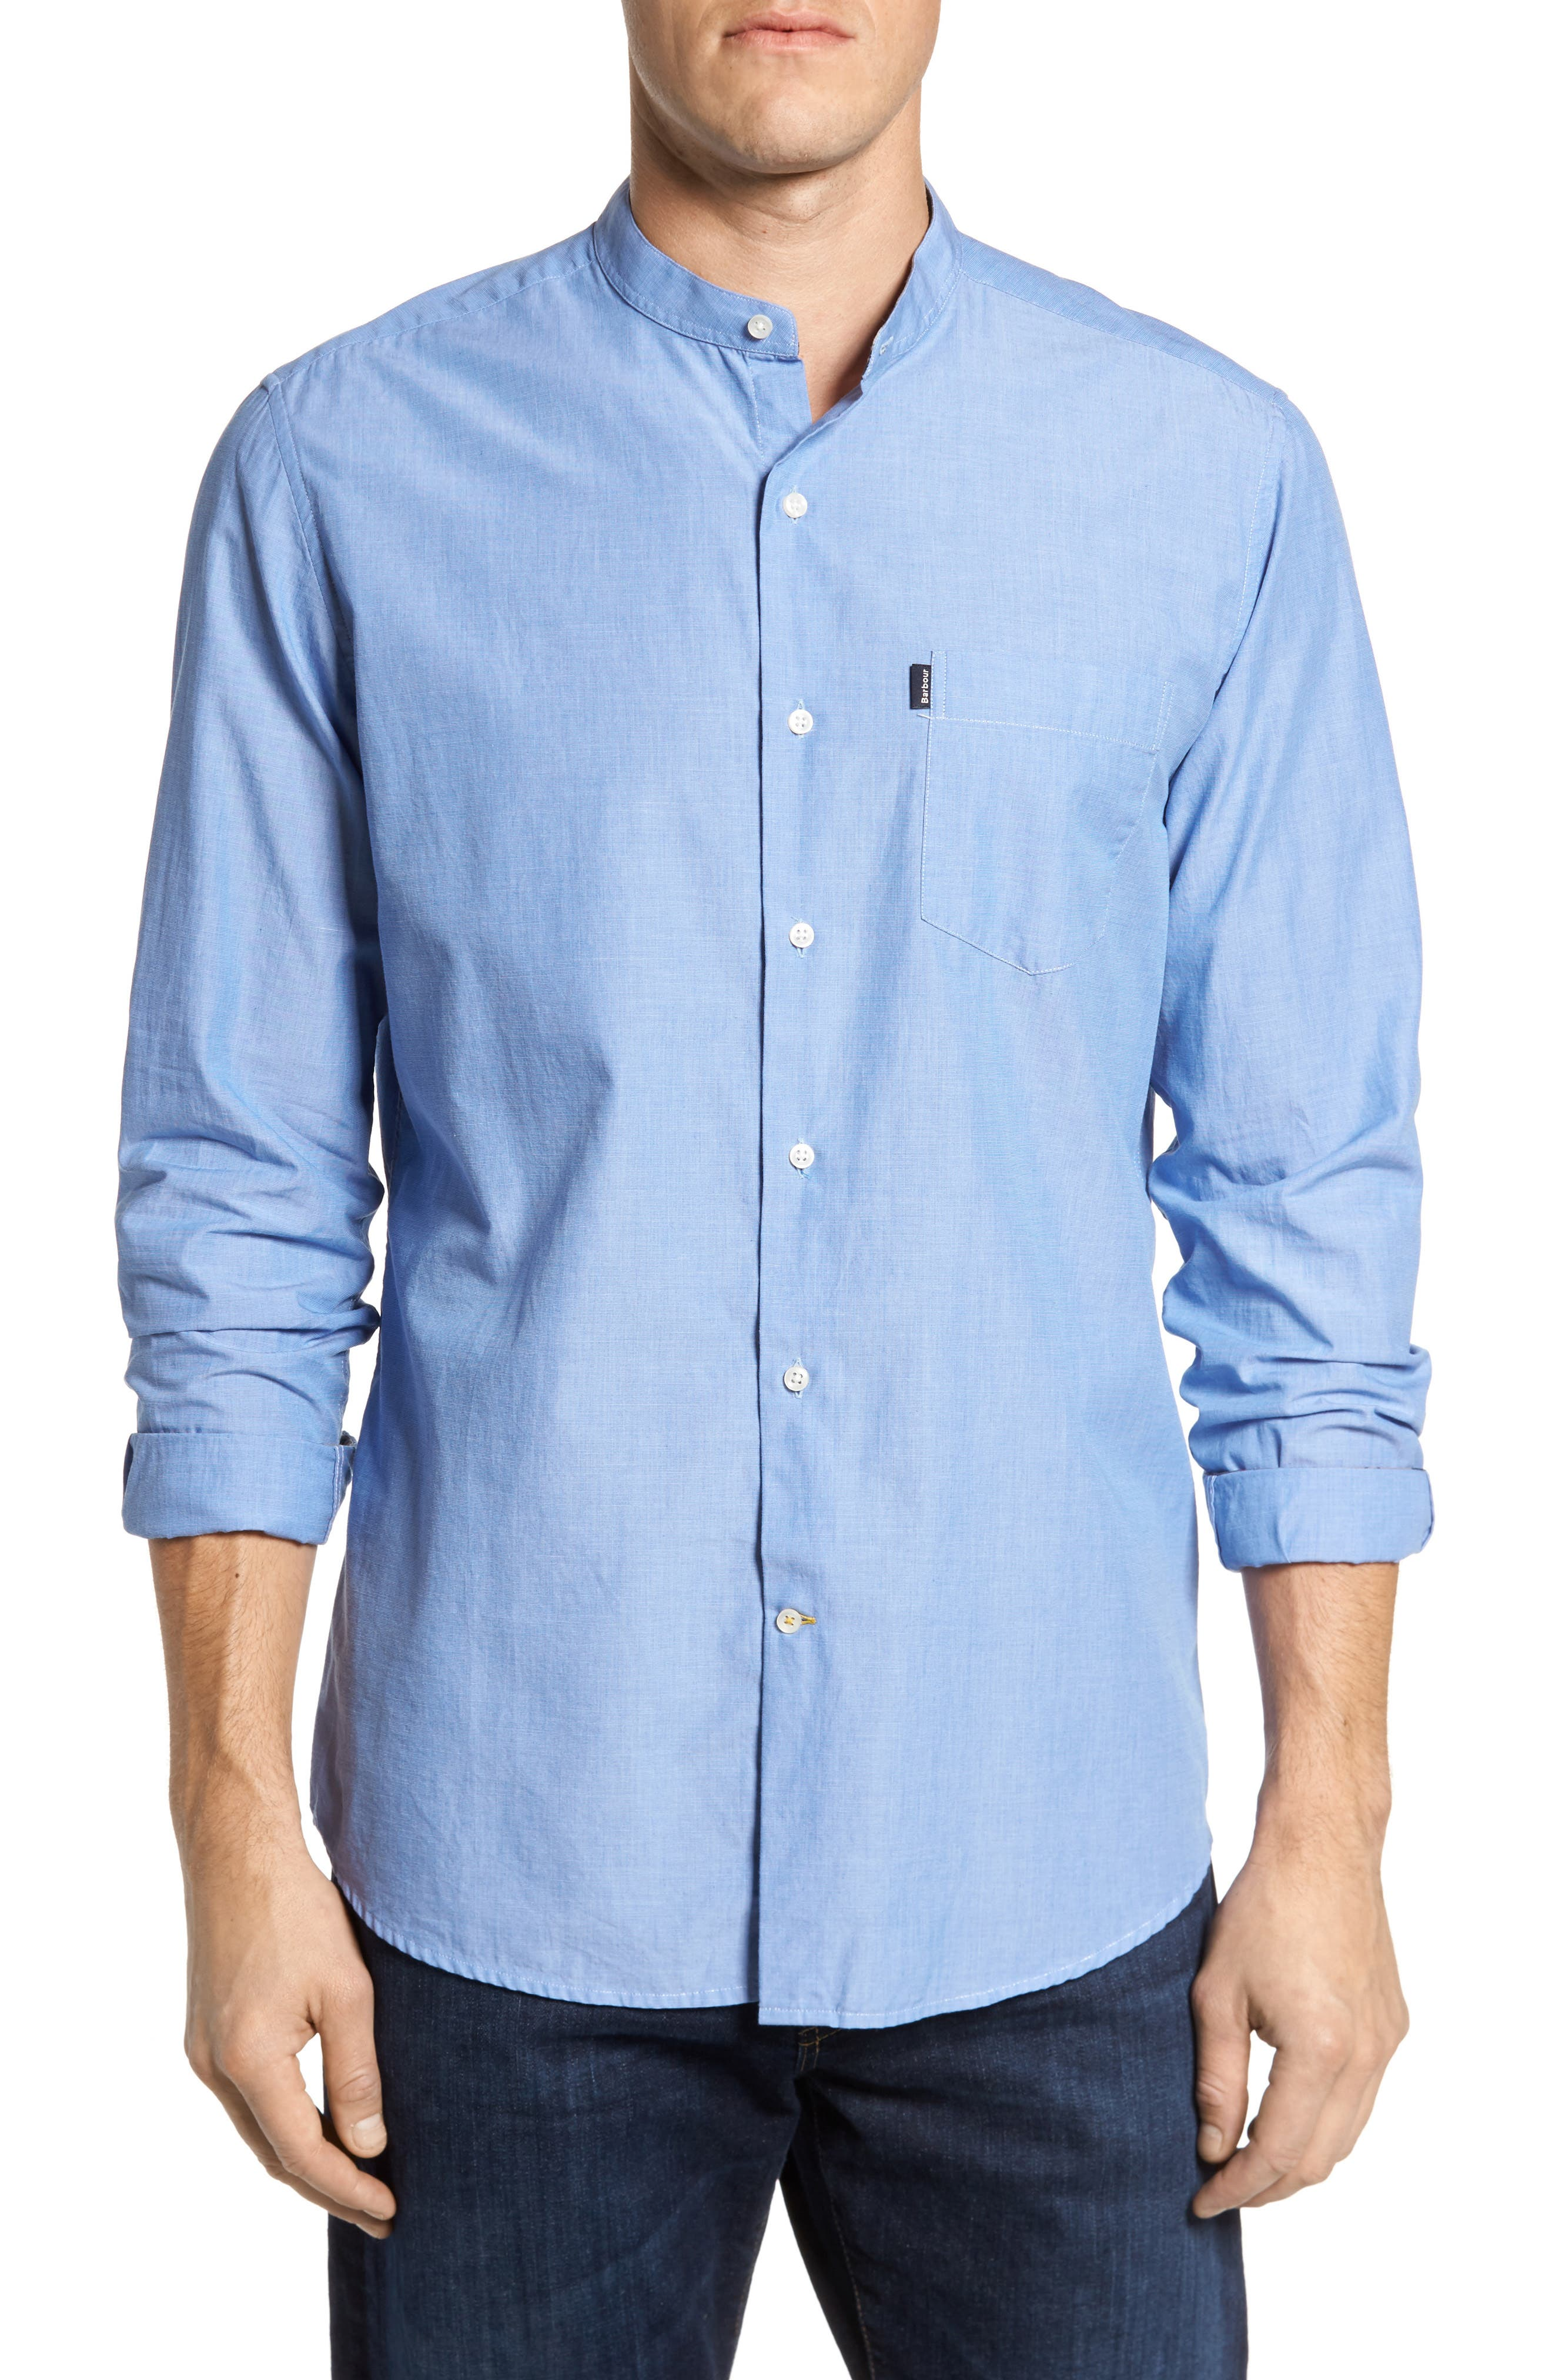 Fairfield Tailored Fit Sport Shirt,                         Main,                         color, 450